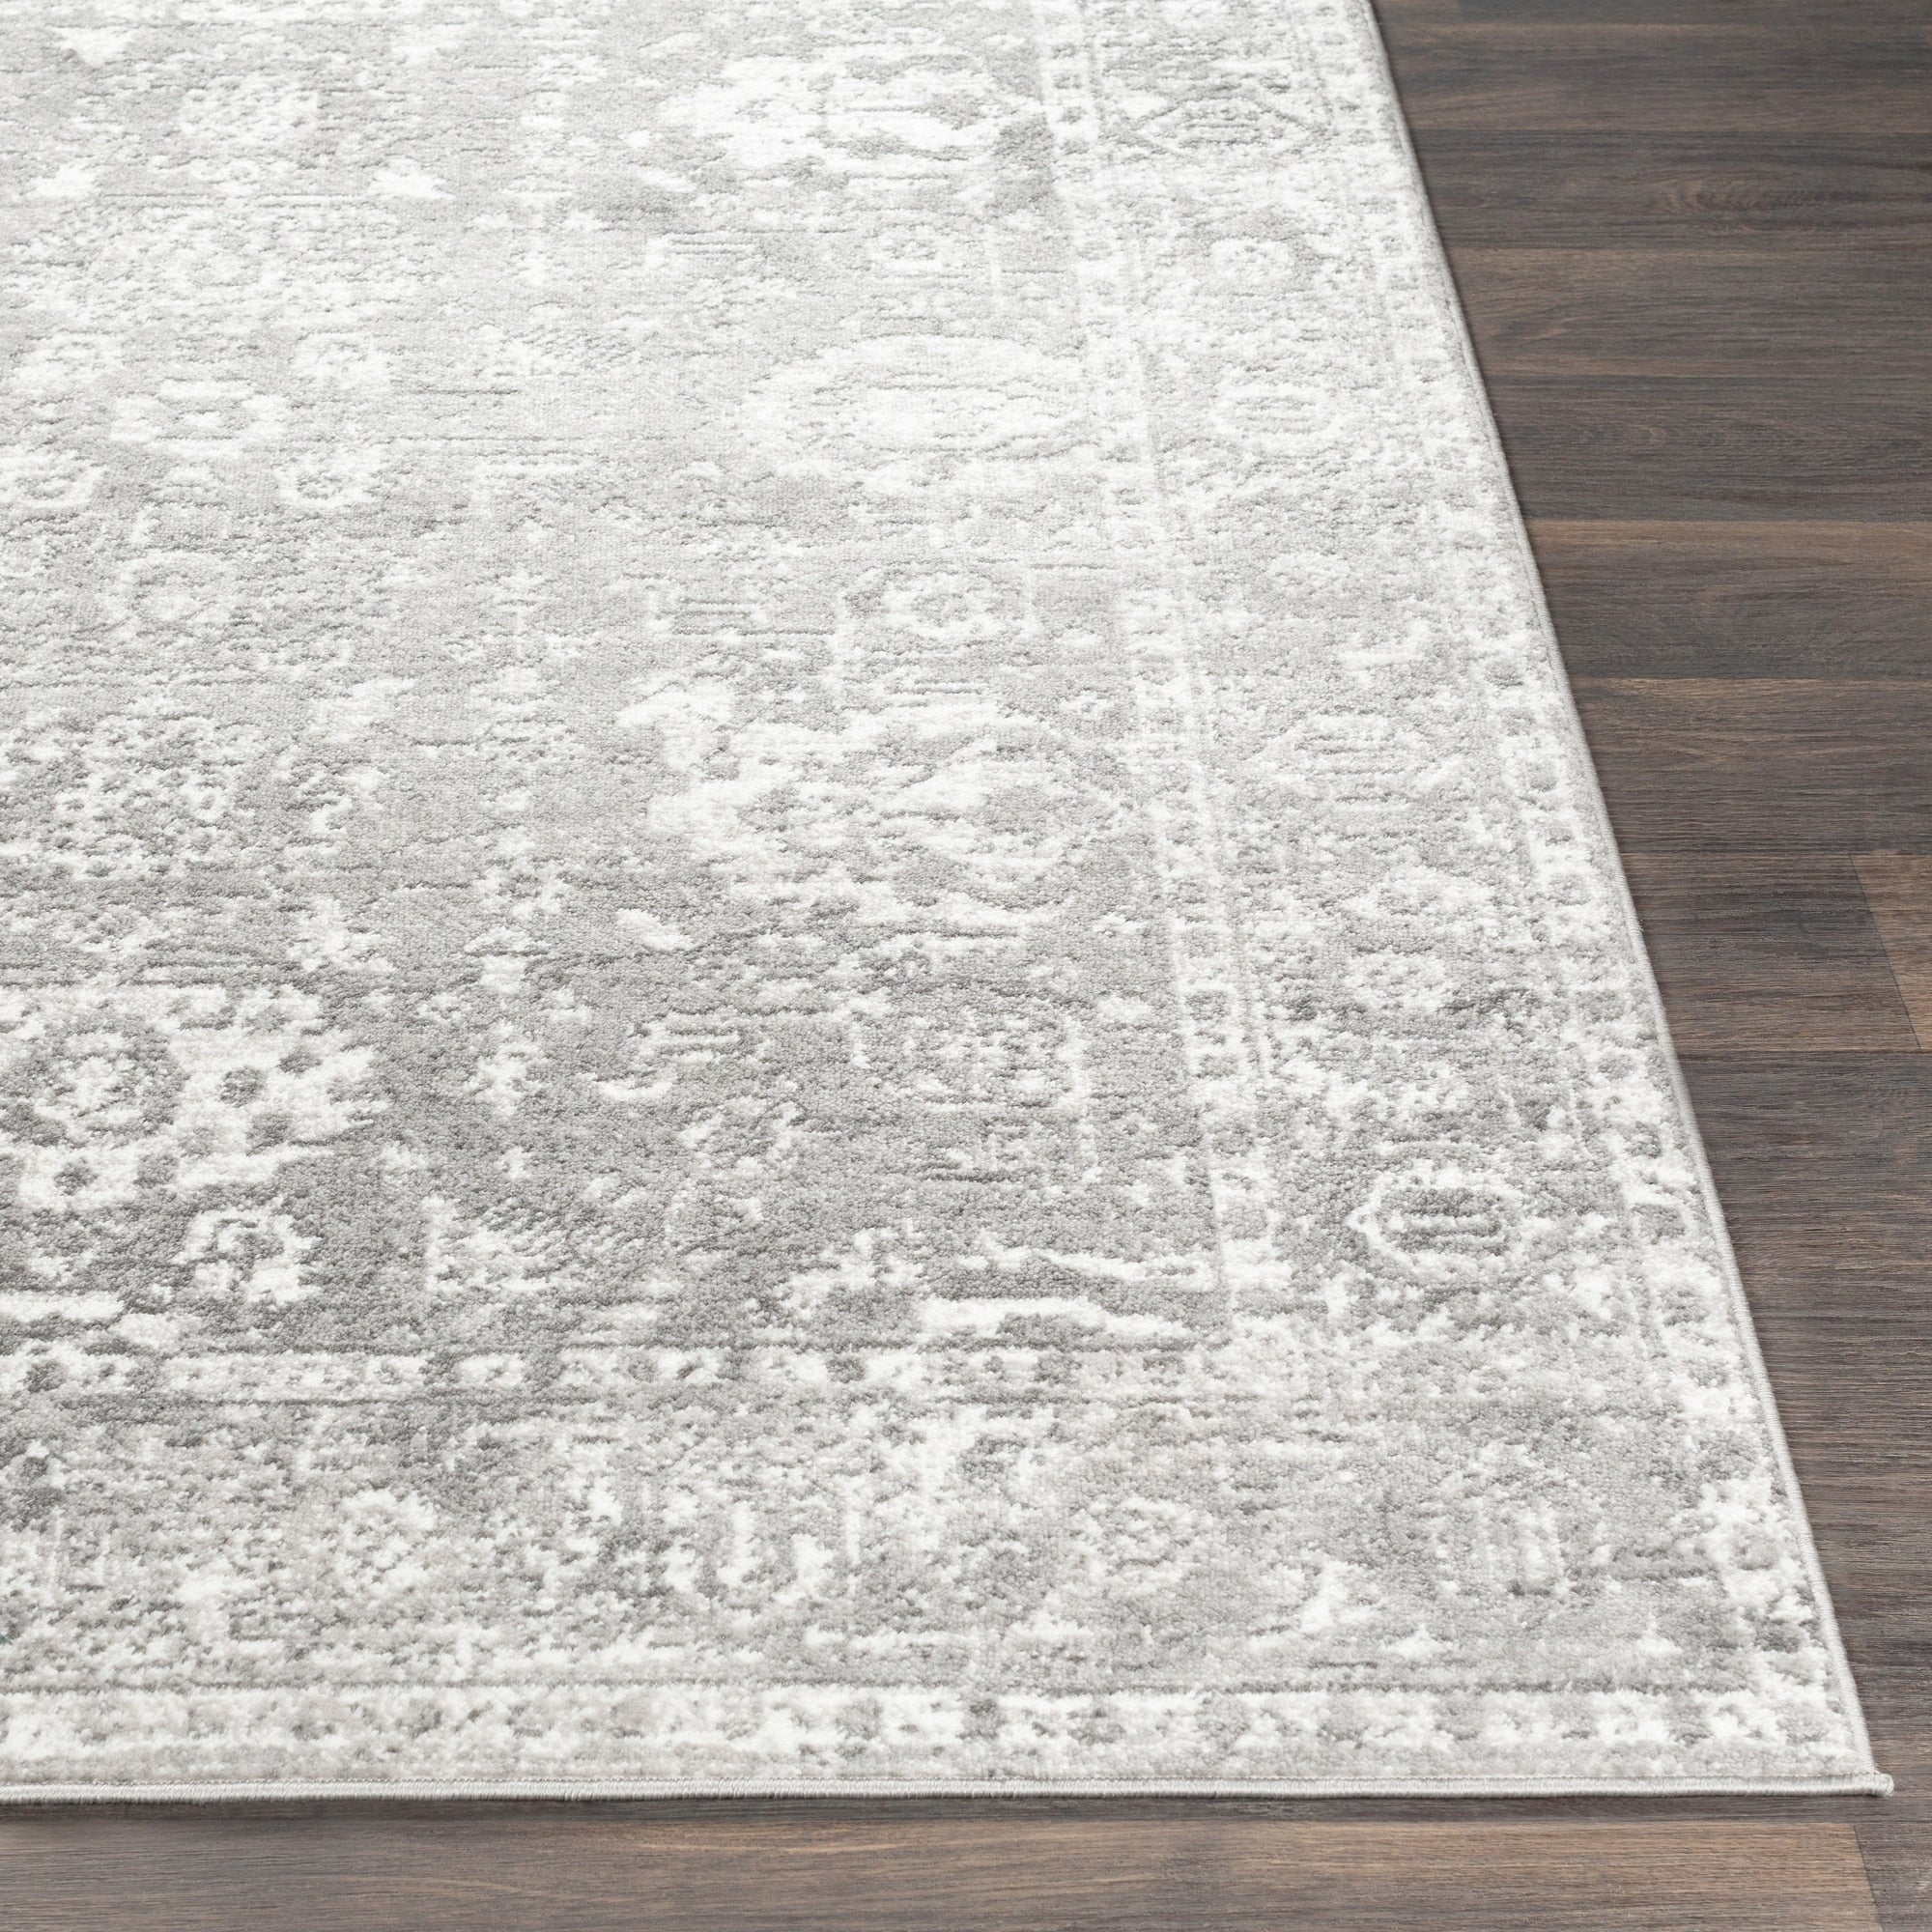 Distressed Light Gray White Soft Area Rug Modern Rugs